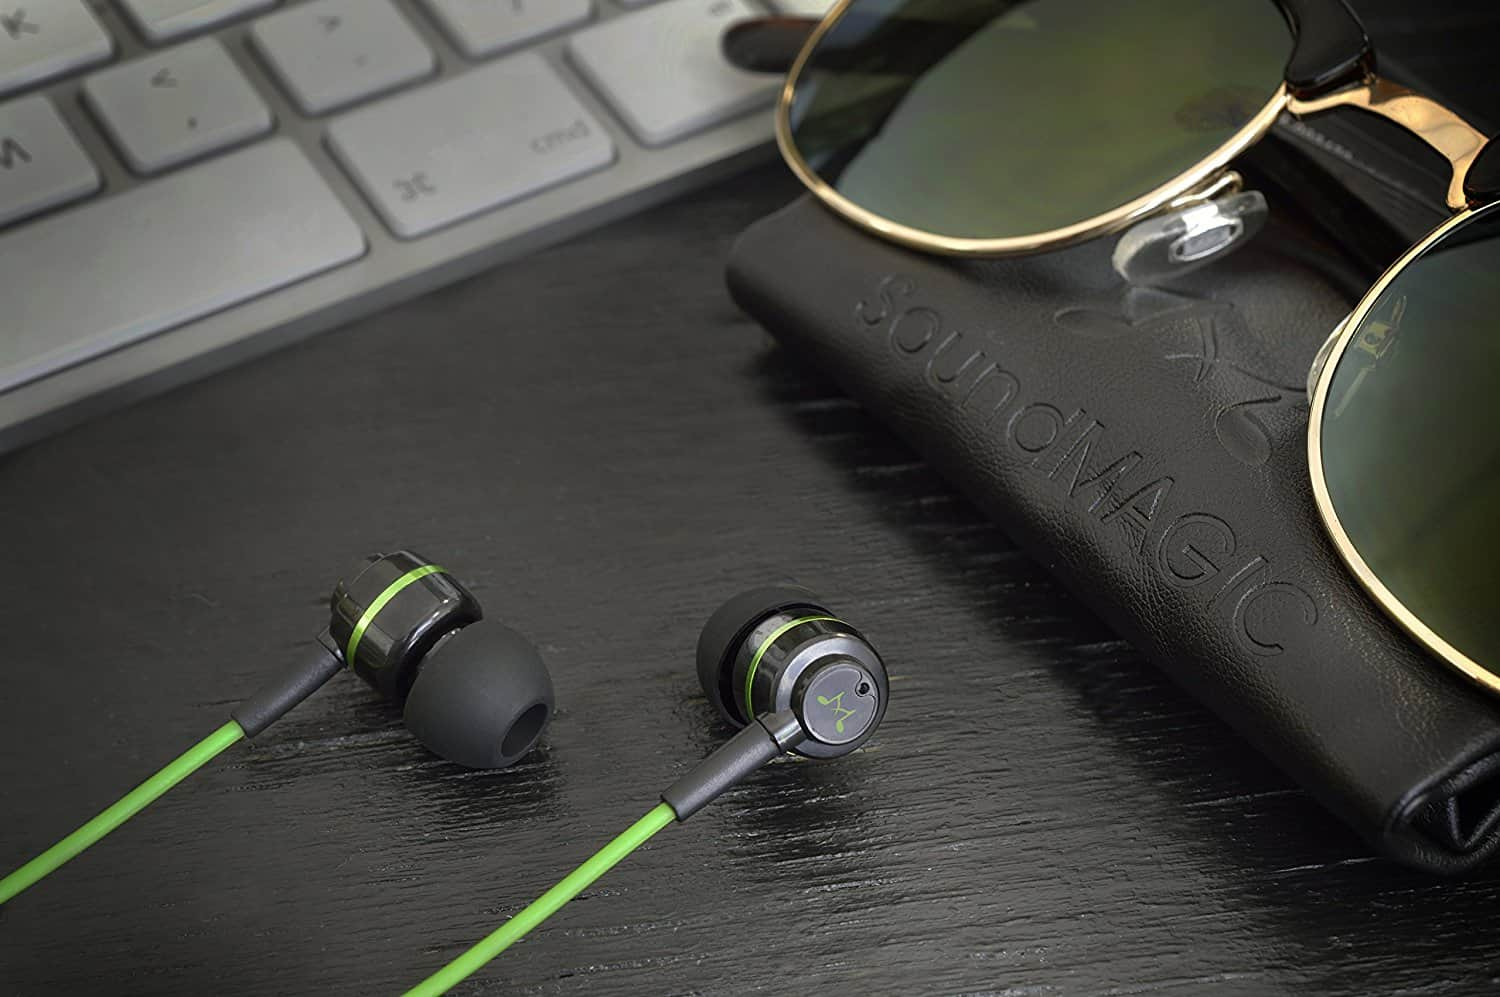 SOUNDMAGIC ES18 - Best Earbuds Under $30: Top 10 Handpicked Cheap Earbuds